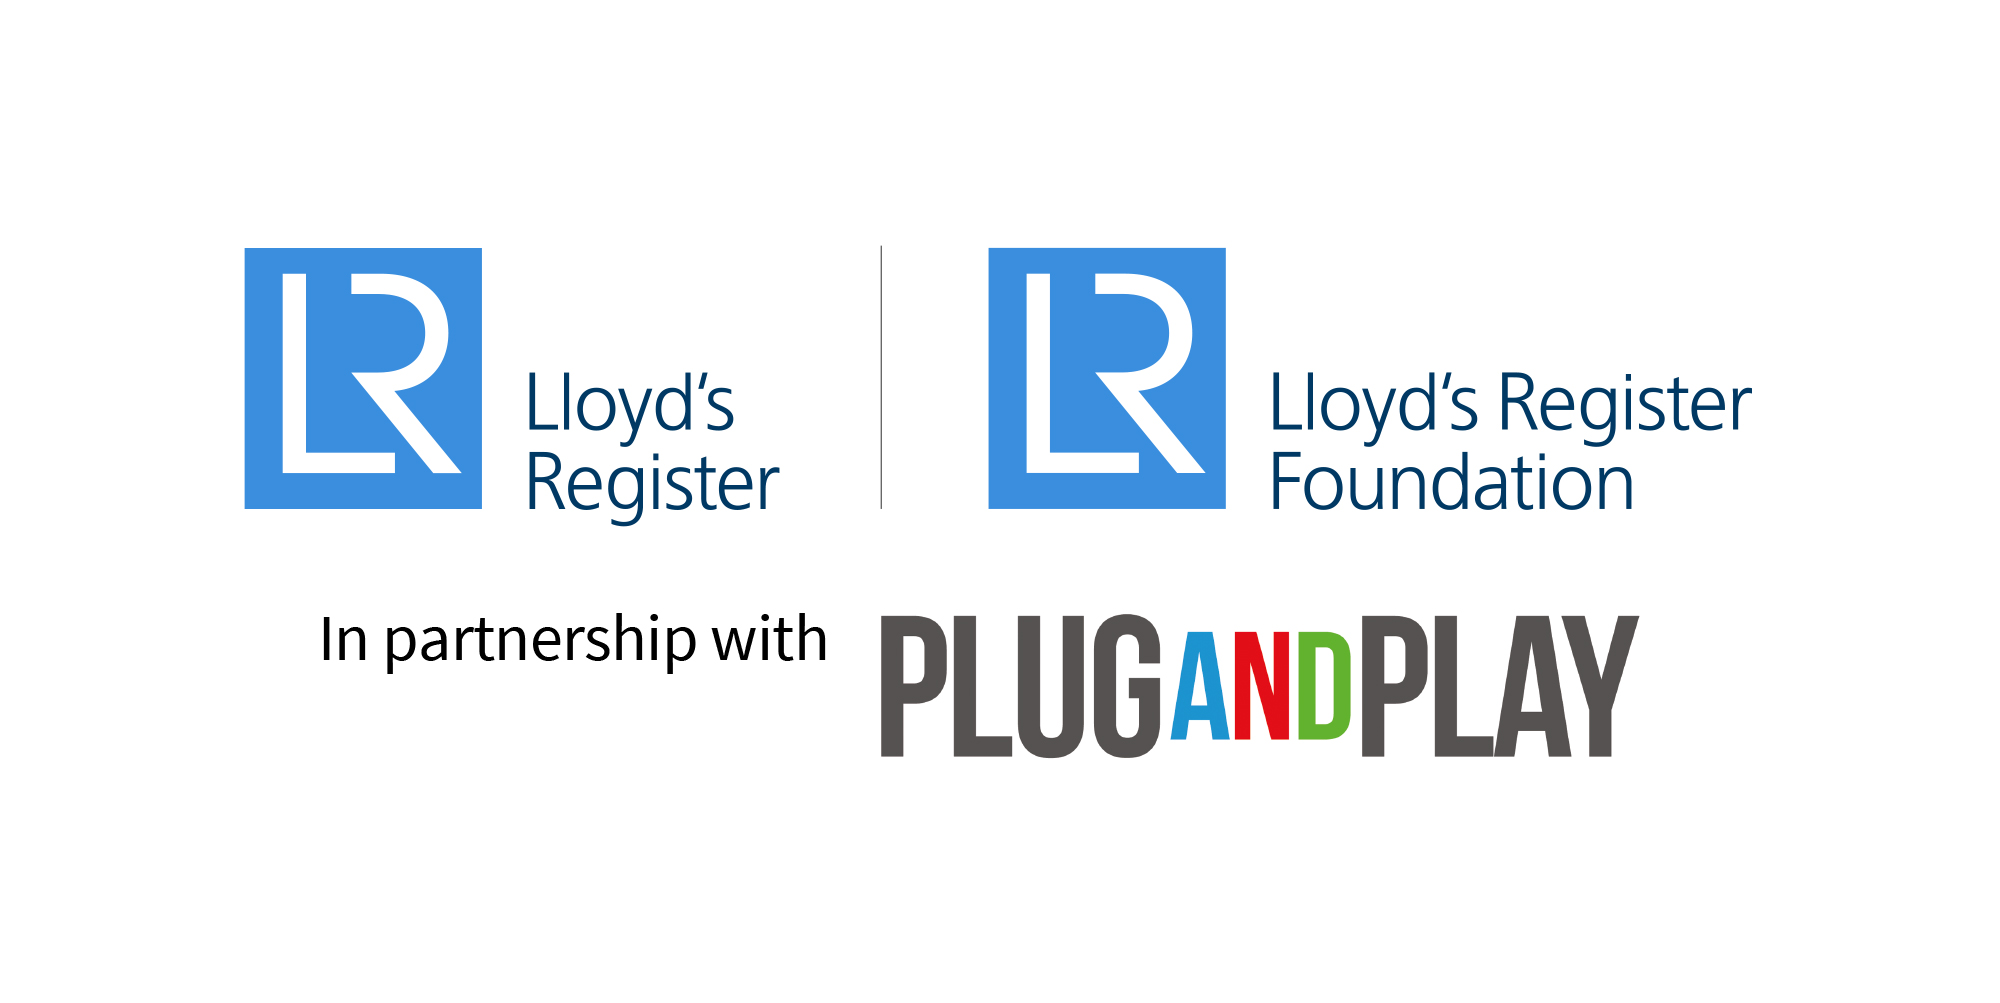 Safety Accelerator sponsor logos - LR, LRF and Plug And Play